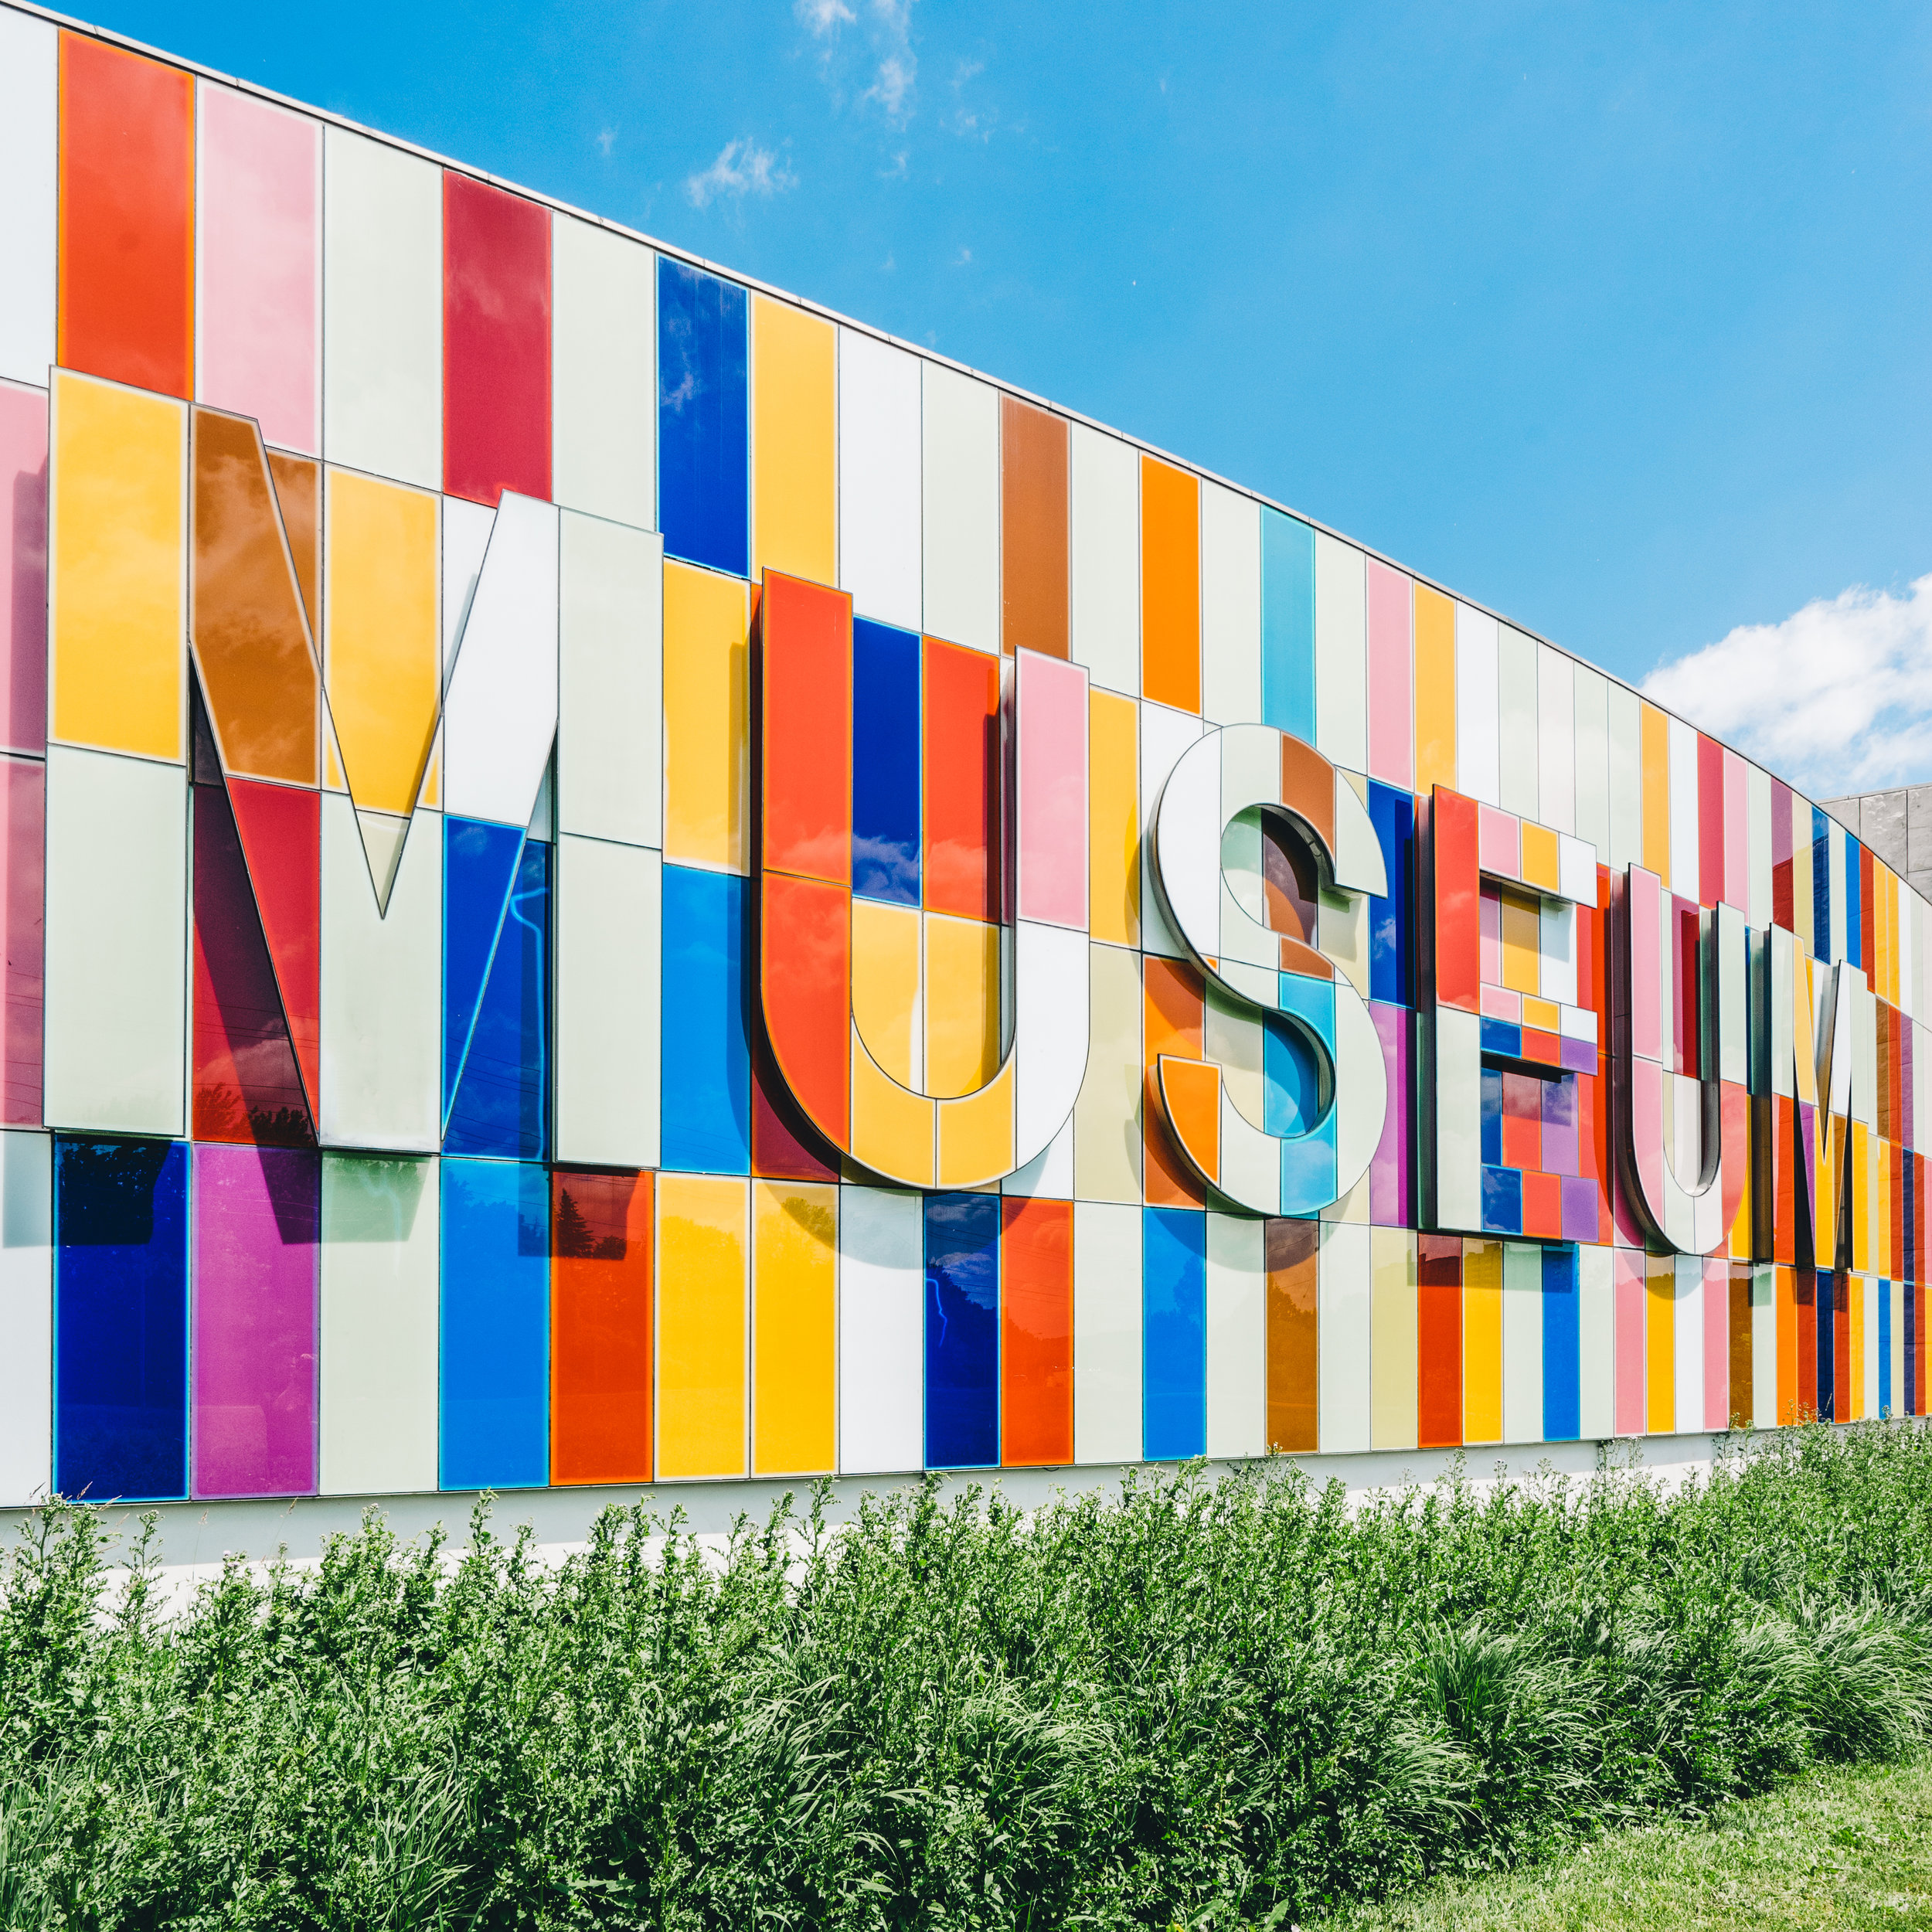 The word Museum is spelled out in colorful tiles alongside a building.